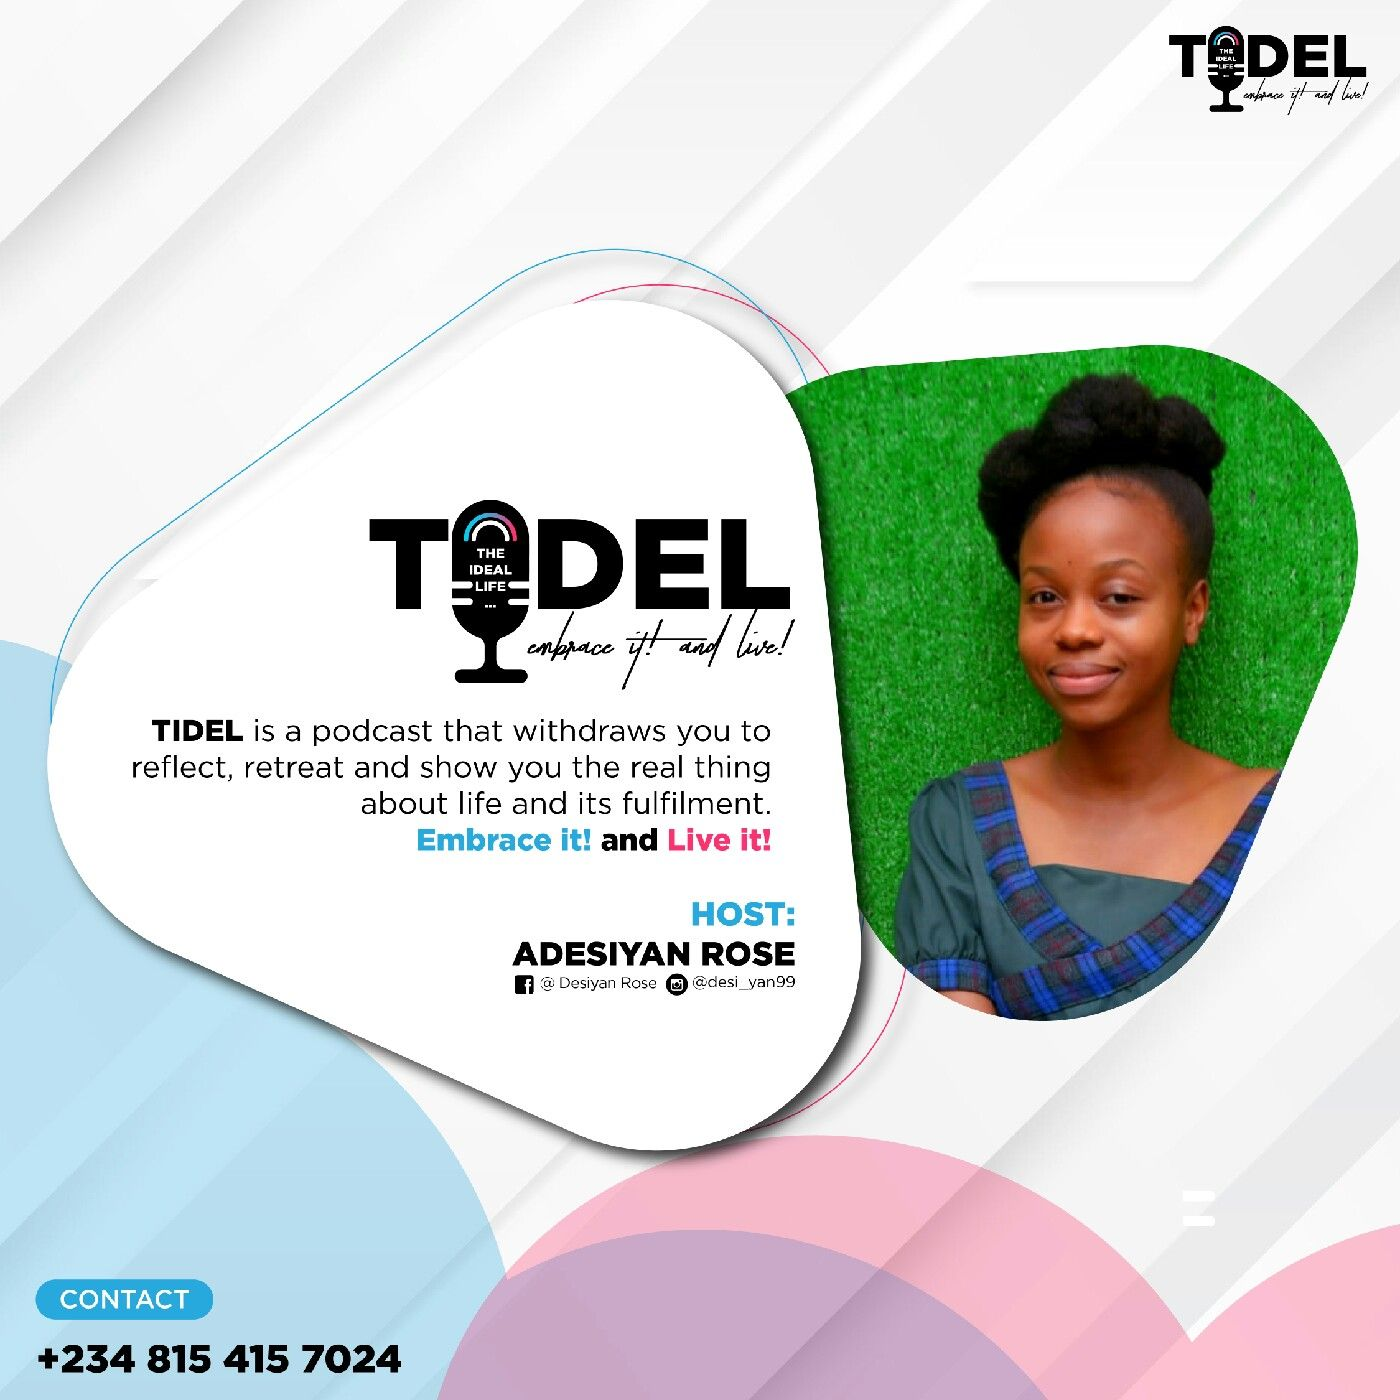 TIDEL (The IDeal Life) podcast with Rose